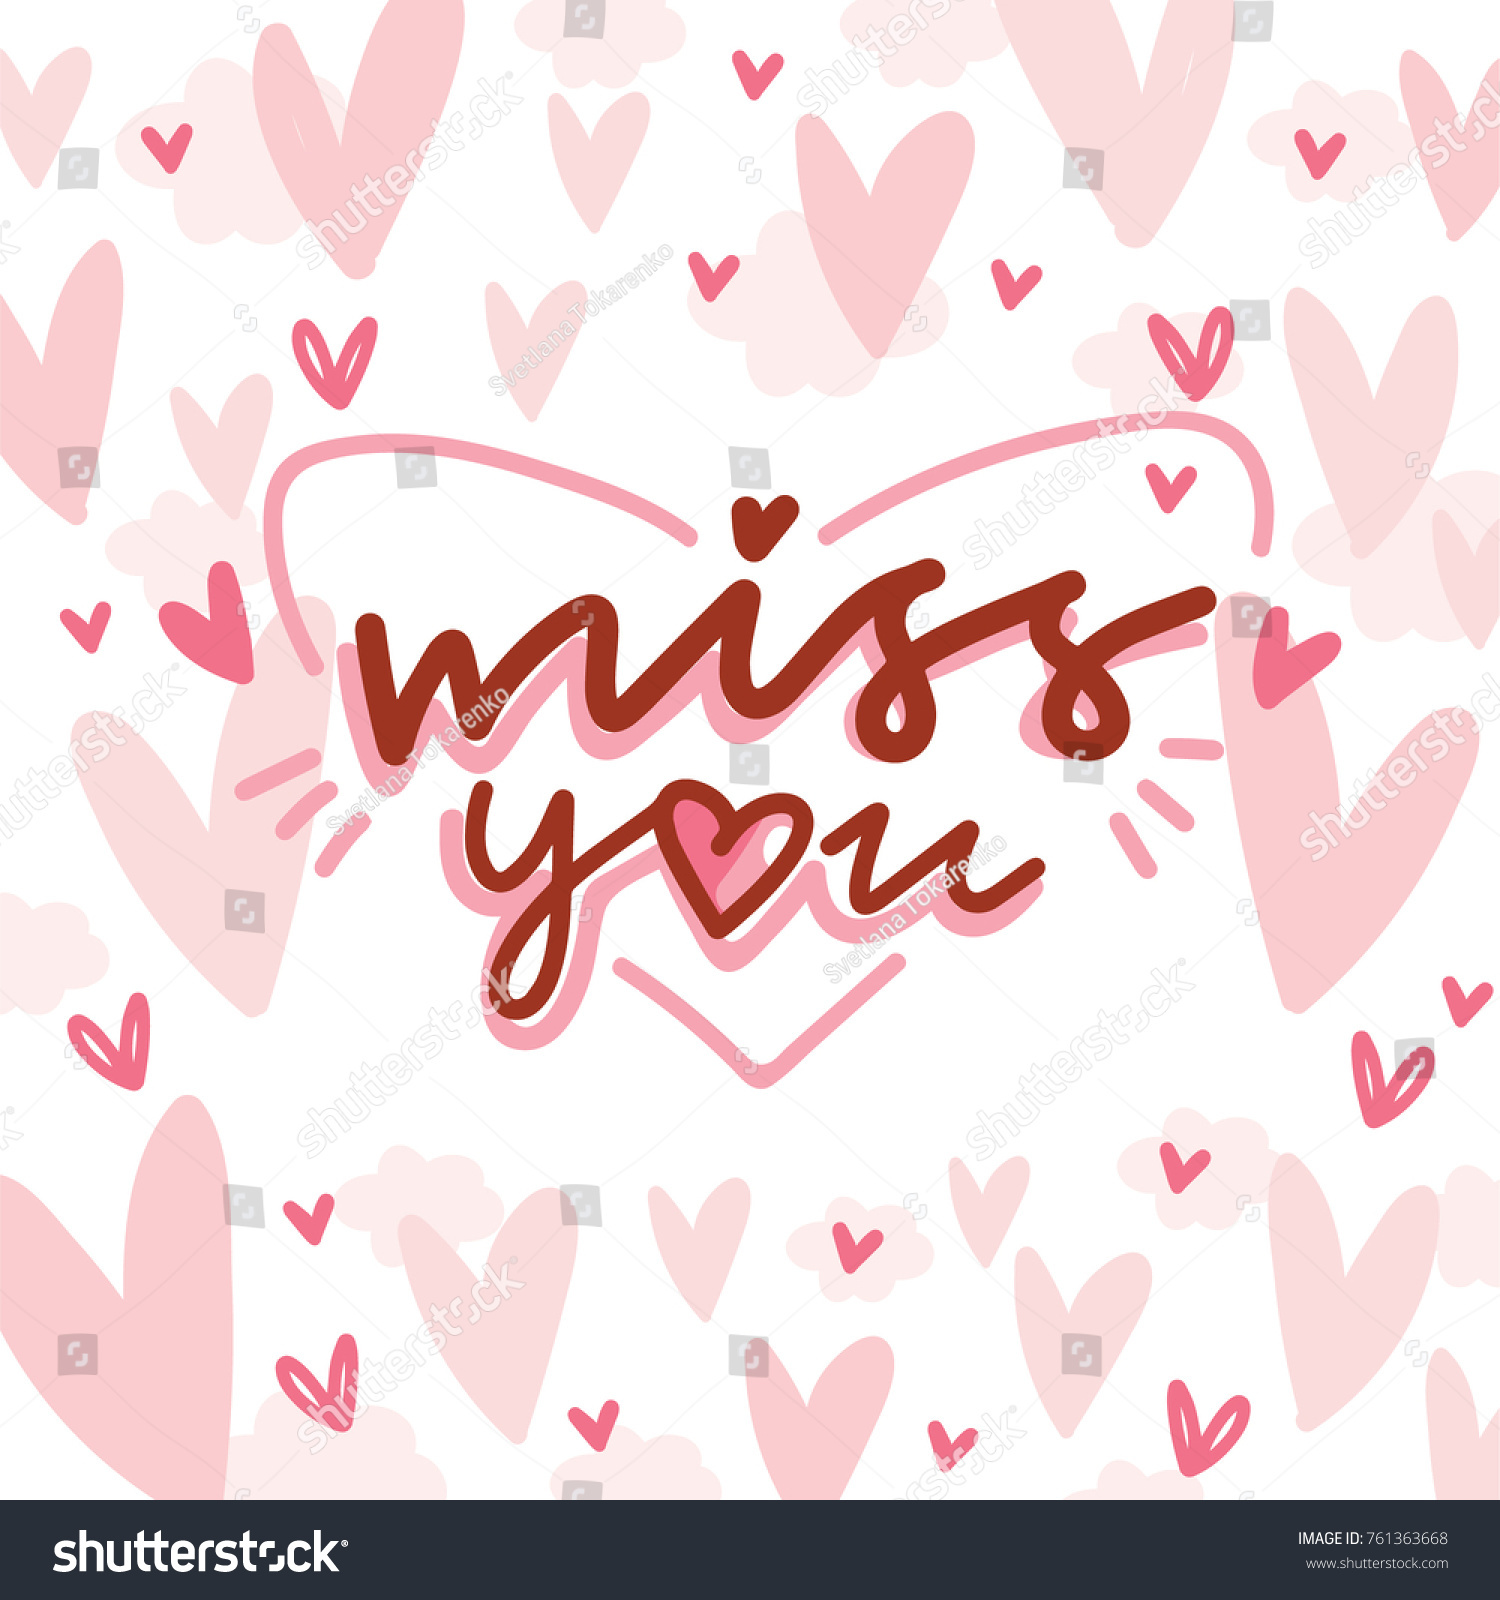 Love lettering calligraphy text doodles on stock vector hd royalty love lettering calligraphy text with doodles on romantic background with hearts miss you cute m4hsunfo